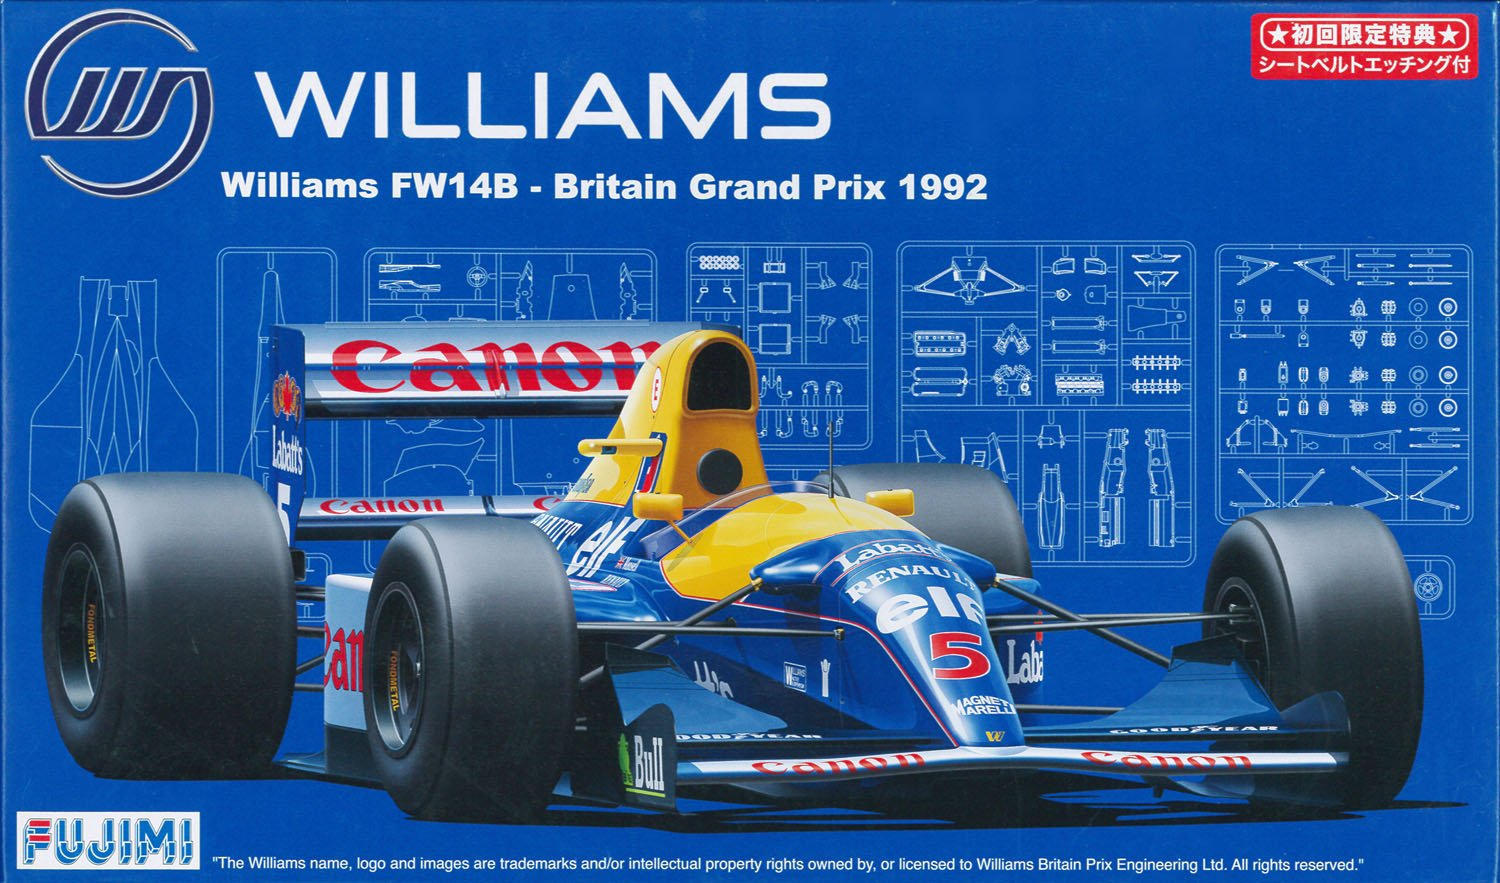 GP SP13 1/20 Williams Fw14b Britain Grand Prix 1992 Seat Belt w/photo-etched Parts